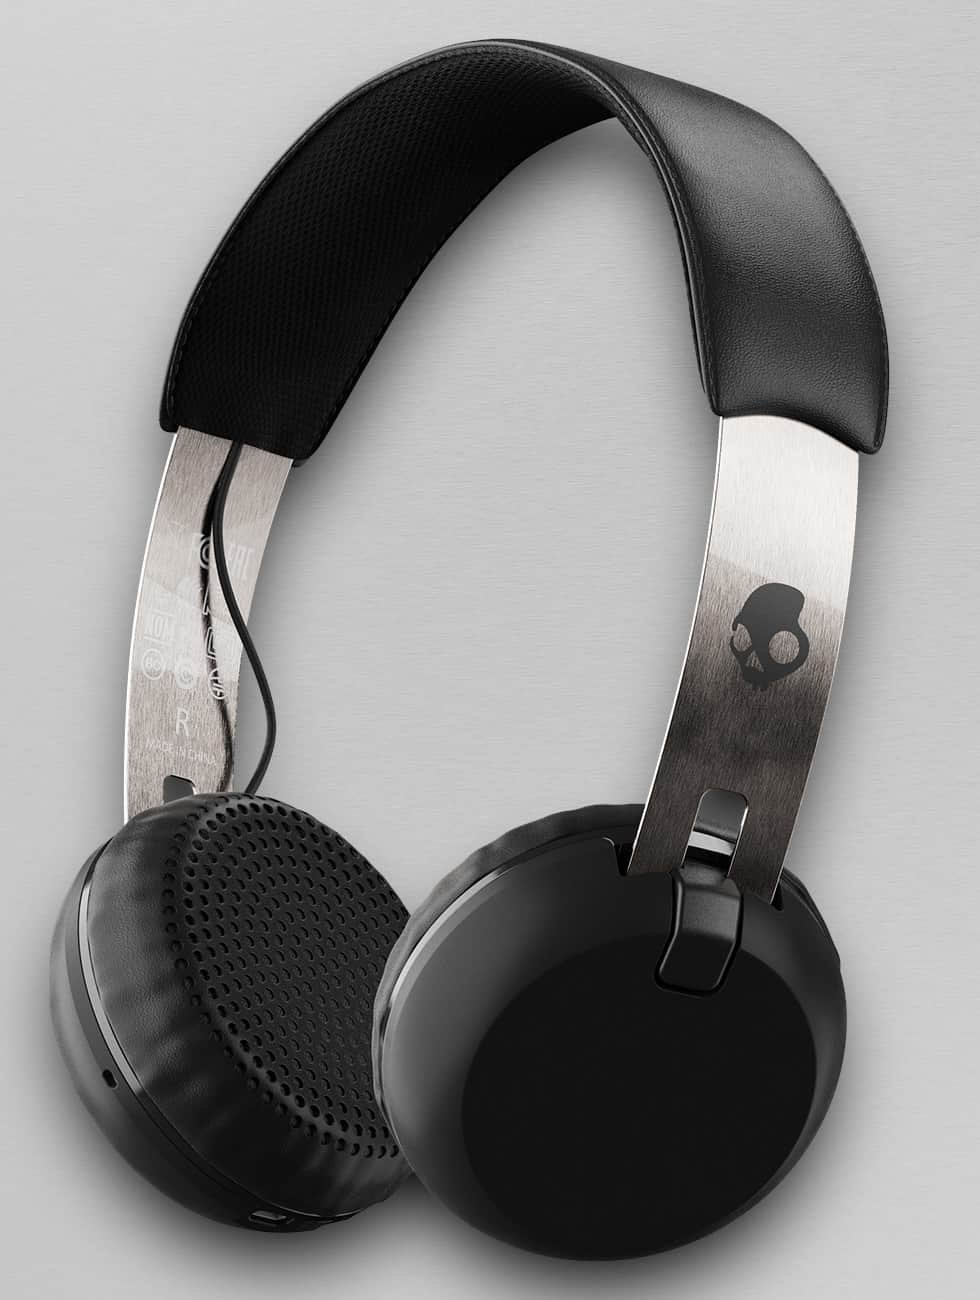 Skullcandy Sluchátka Grind Wireless On Ear èierna